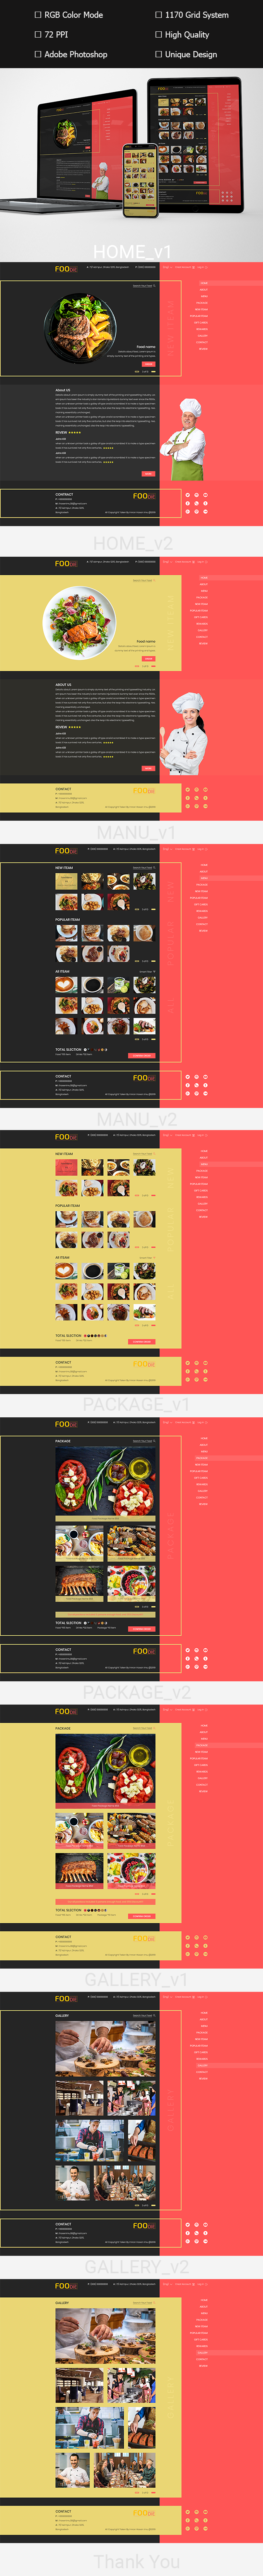 Foodie Restaurant WEB UI PSD Template